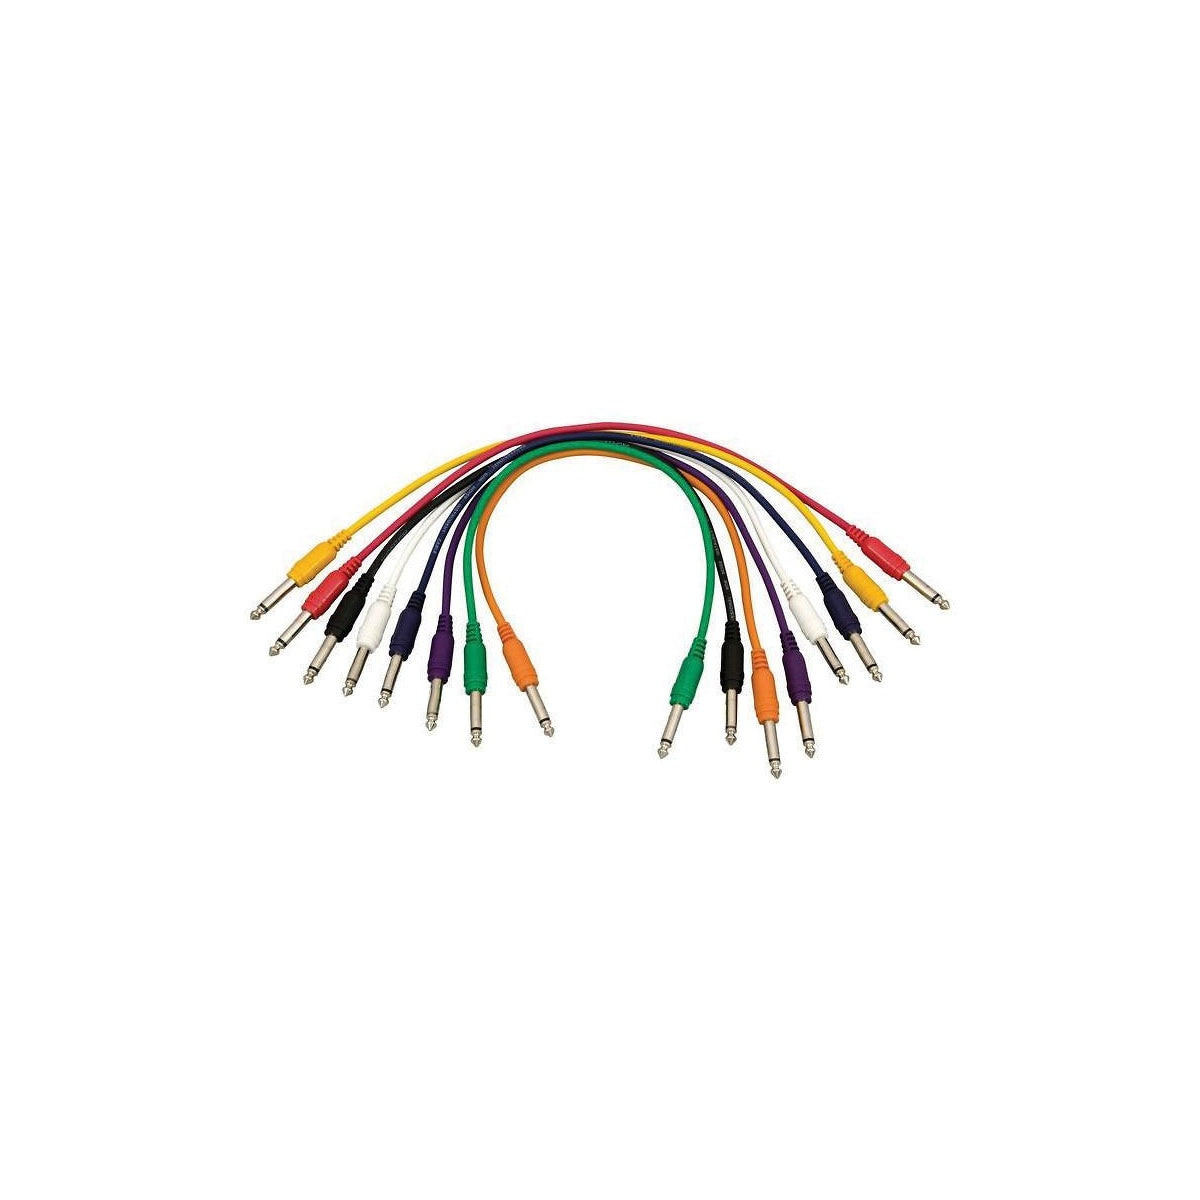 Hot Wires 1/4 Inch TS Patch Cables (8-Pack), PC1817QTRS, Straight End, 8-Pack, 17 Inch